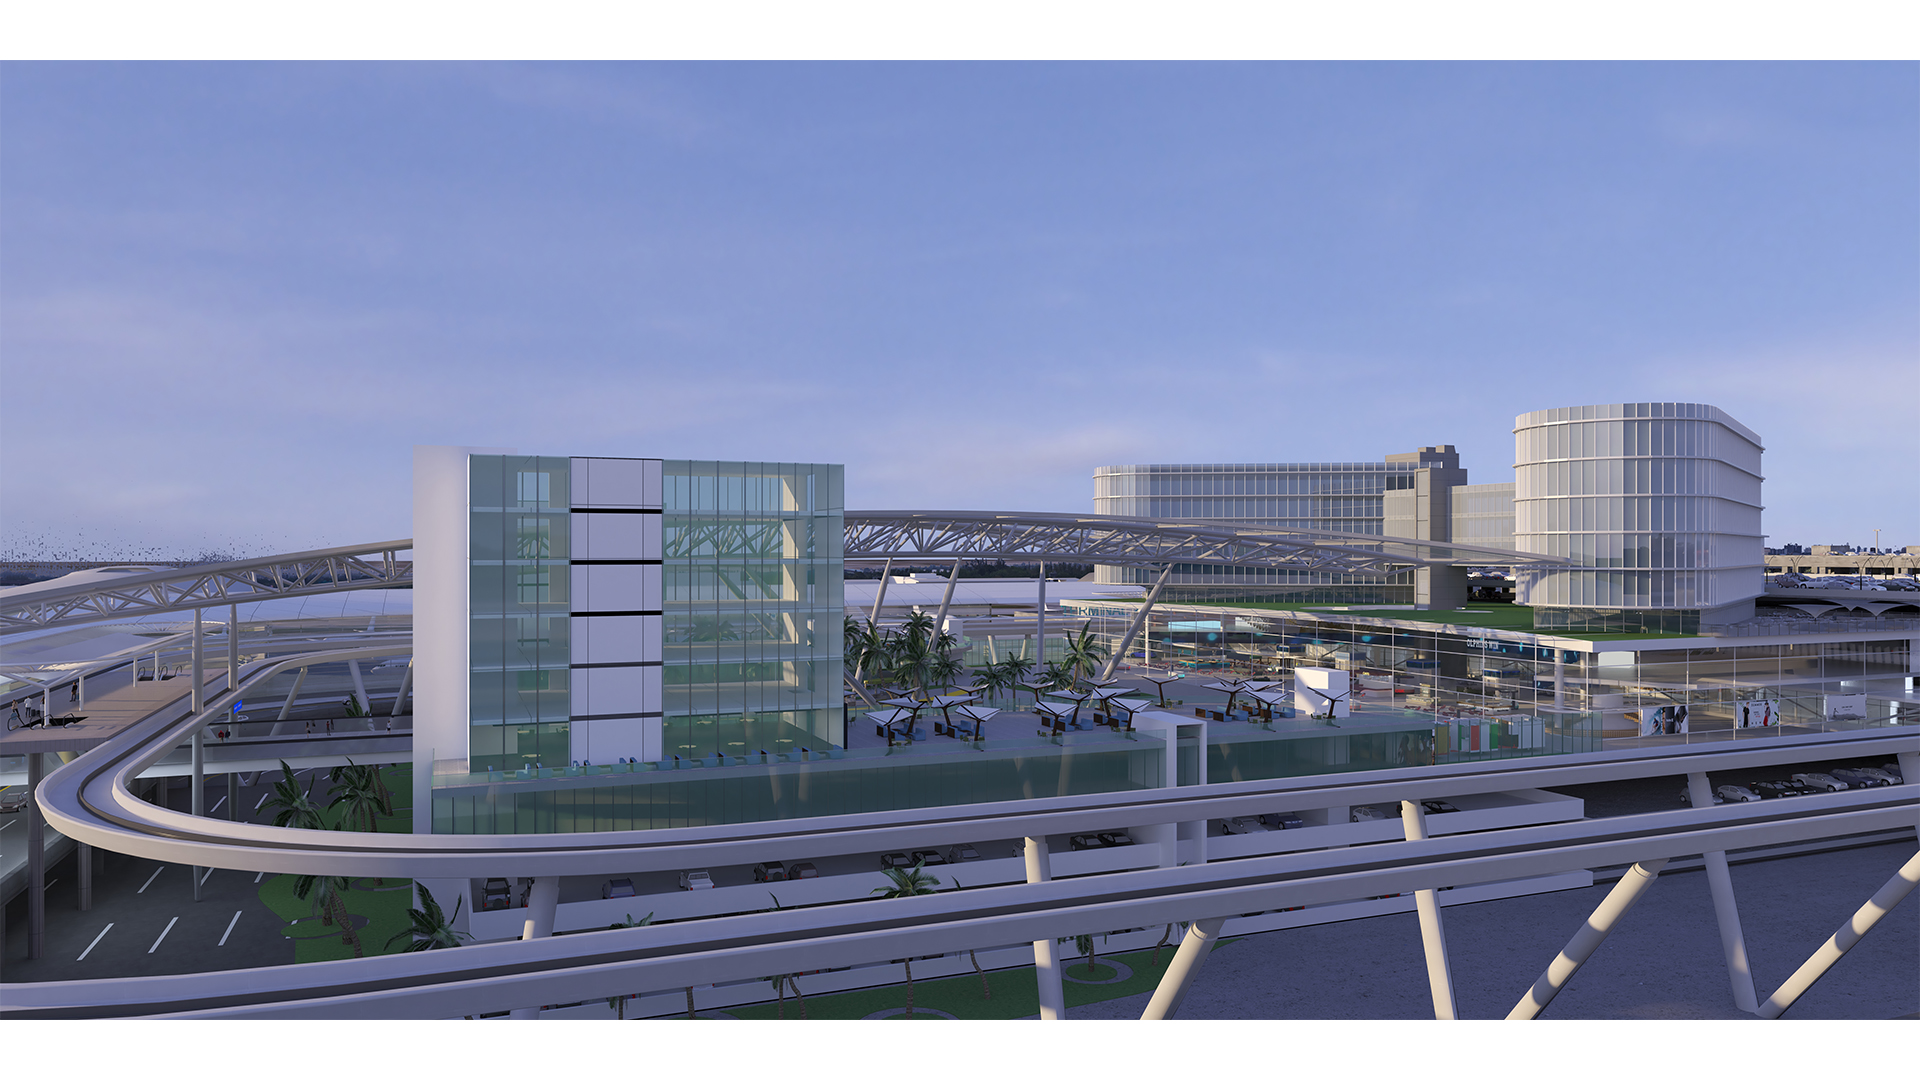 IMD_Rendering_Aviation_FLL_46_Hotel_Pano.jpg